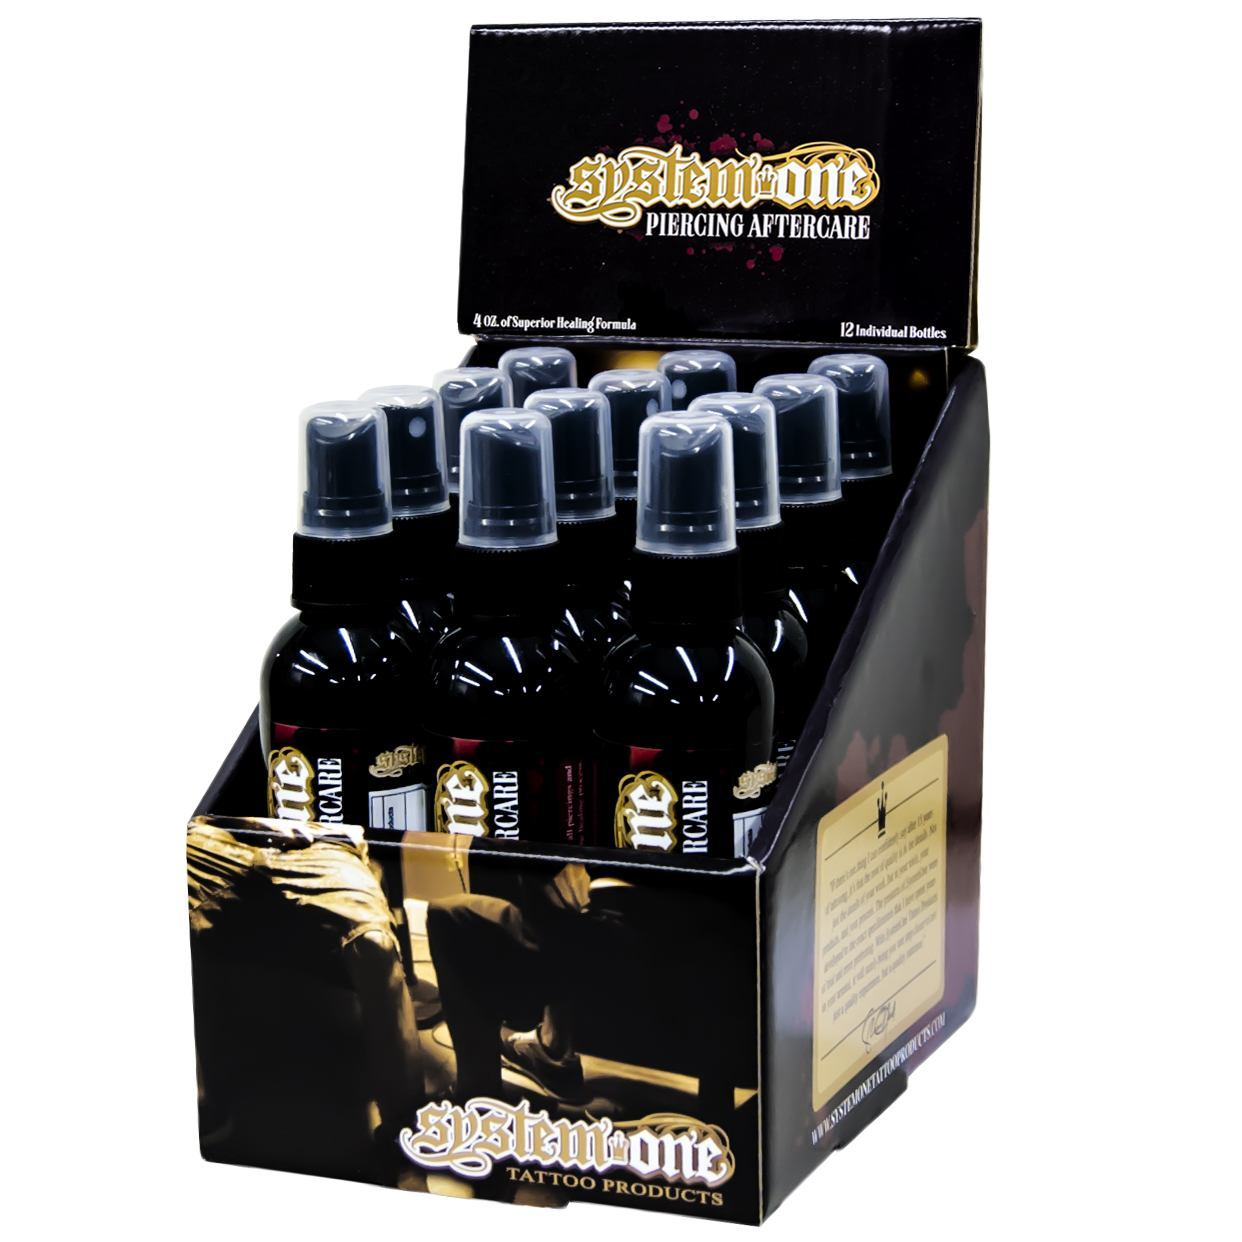 Case of 12 System One Piercing Aftercare Spray Bottles